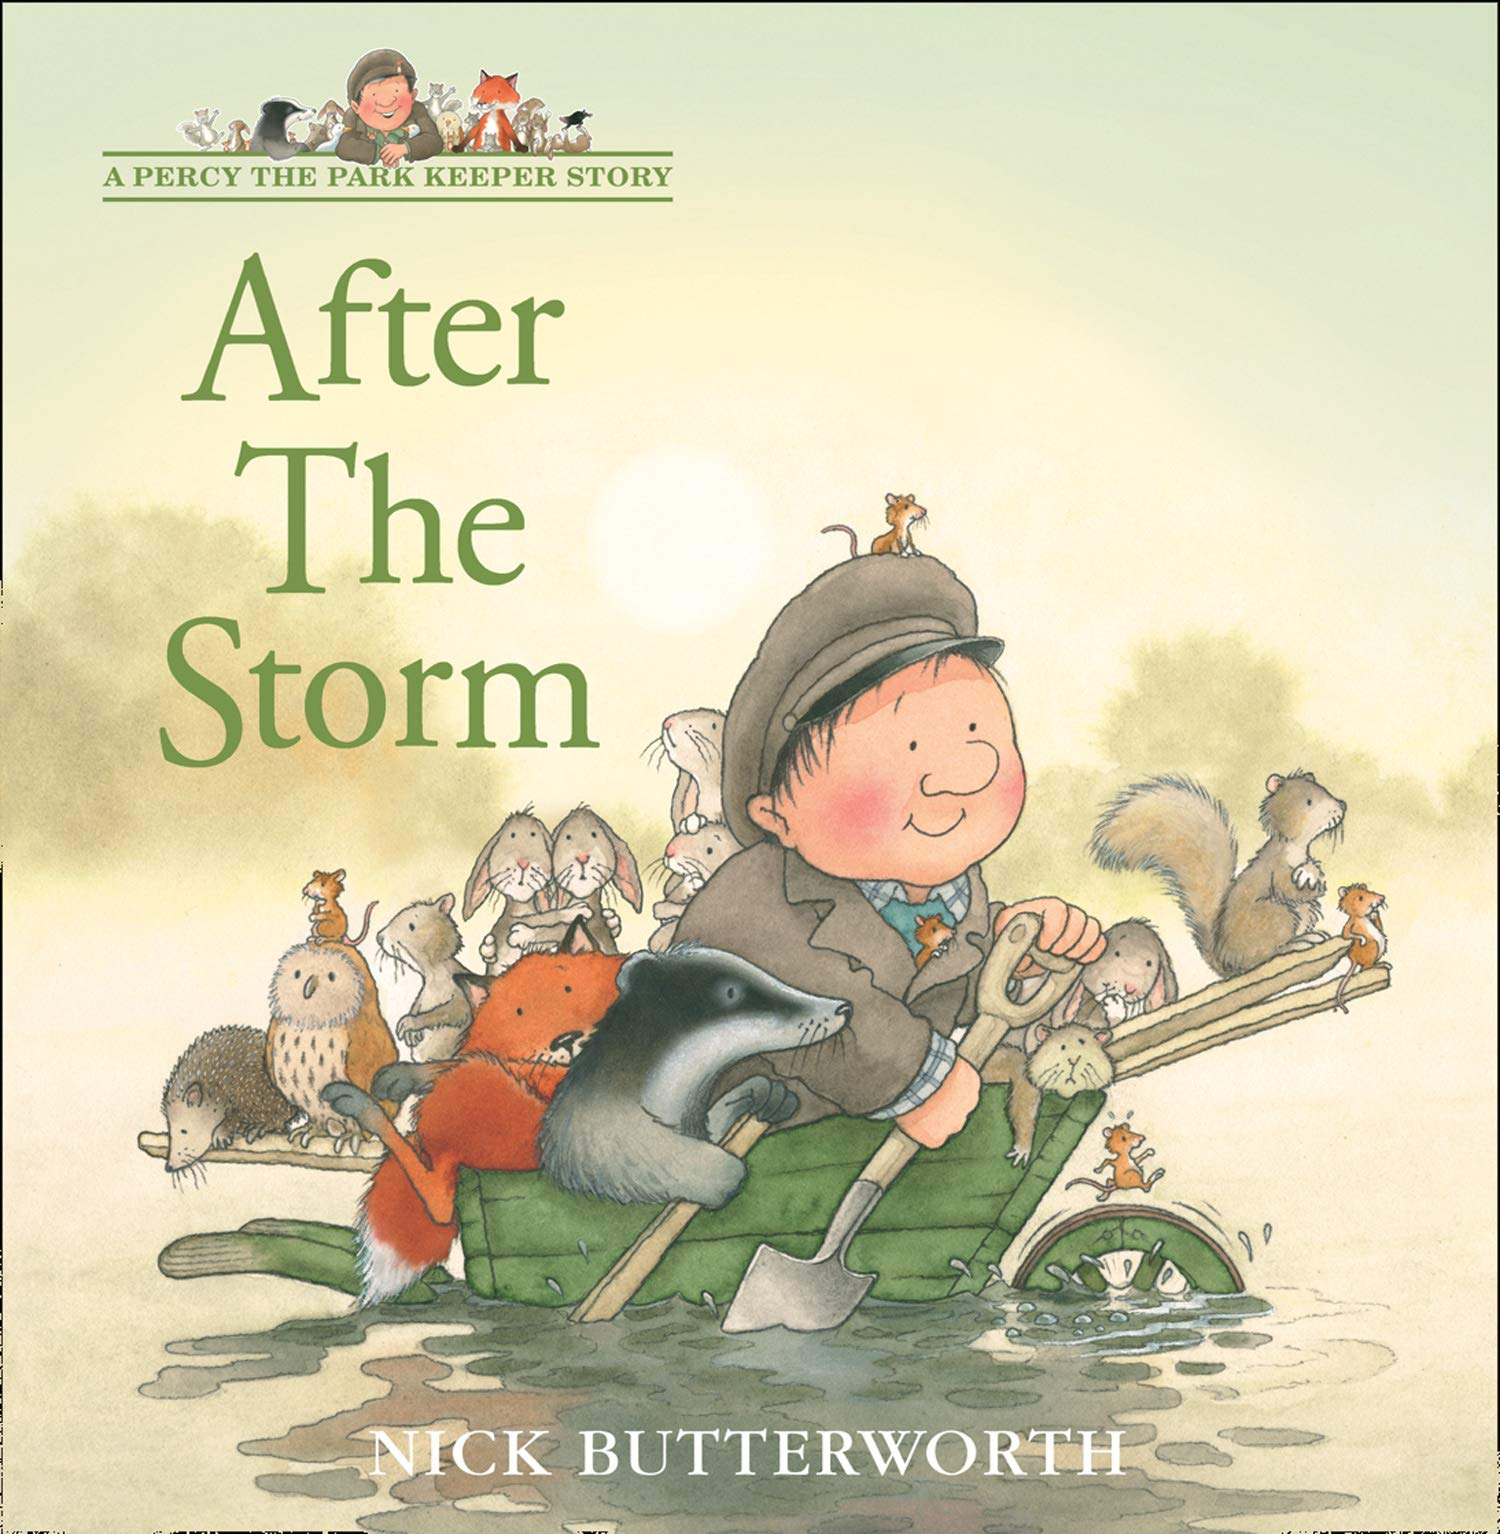 After the Storm (A Percy the Park Keeper Story) : Butterworth, Nick,  Butterworth, Nick: Amazon.co.uk: Books